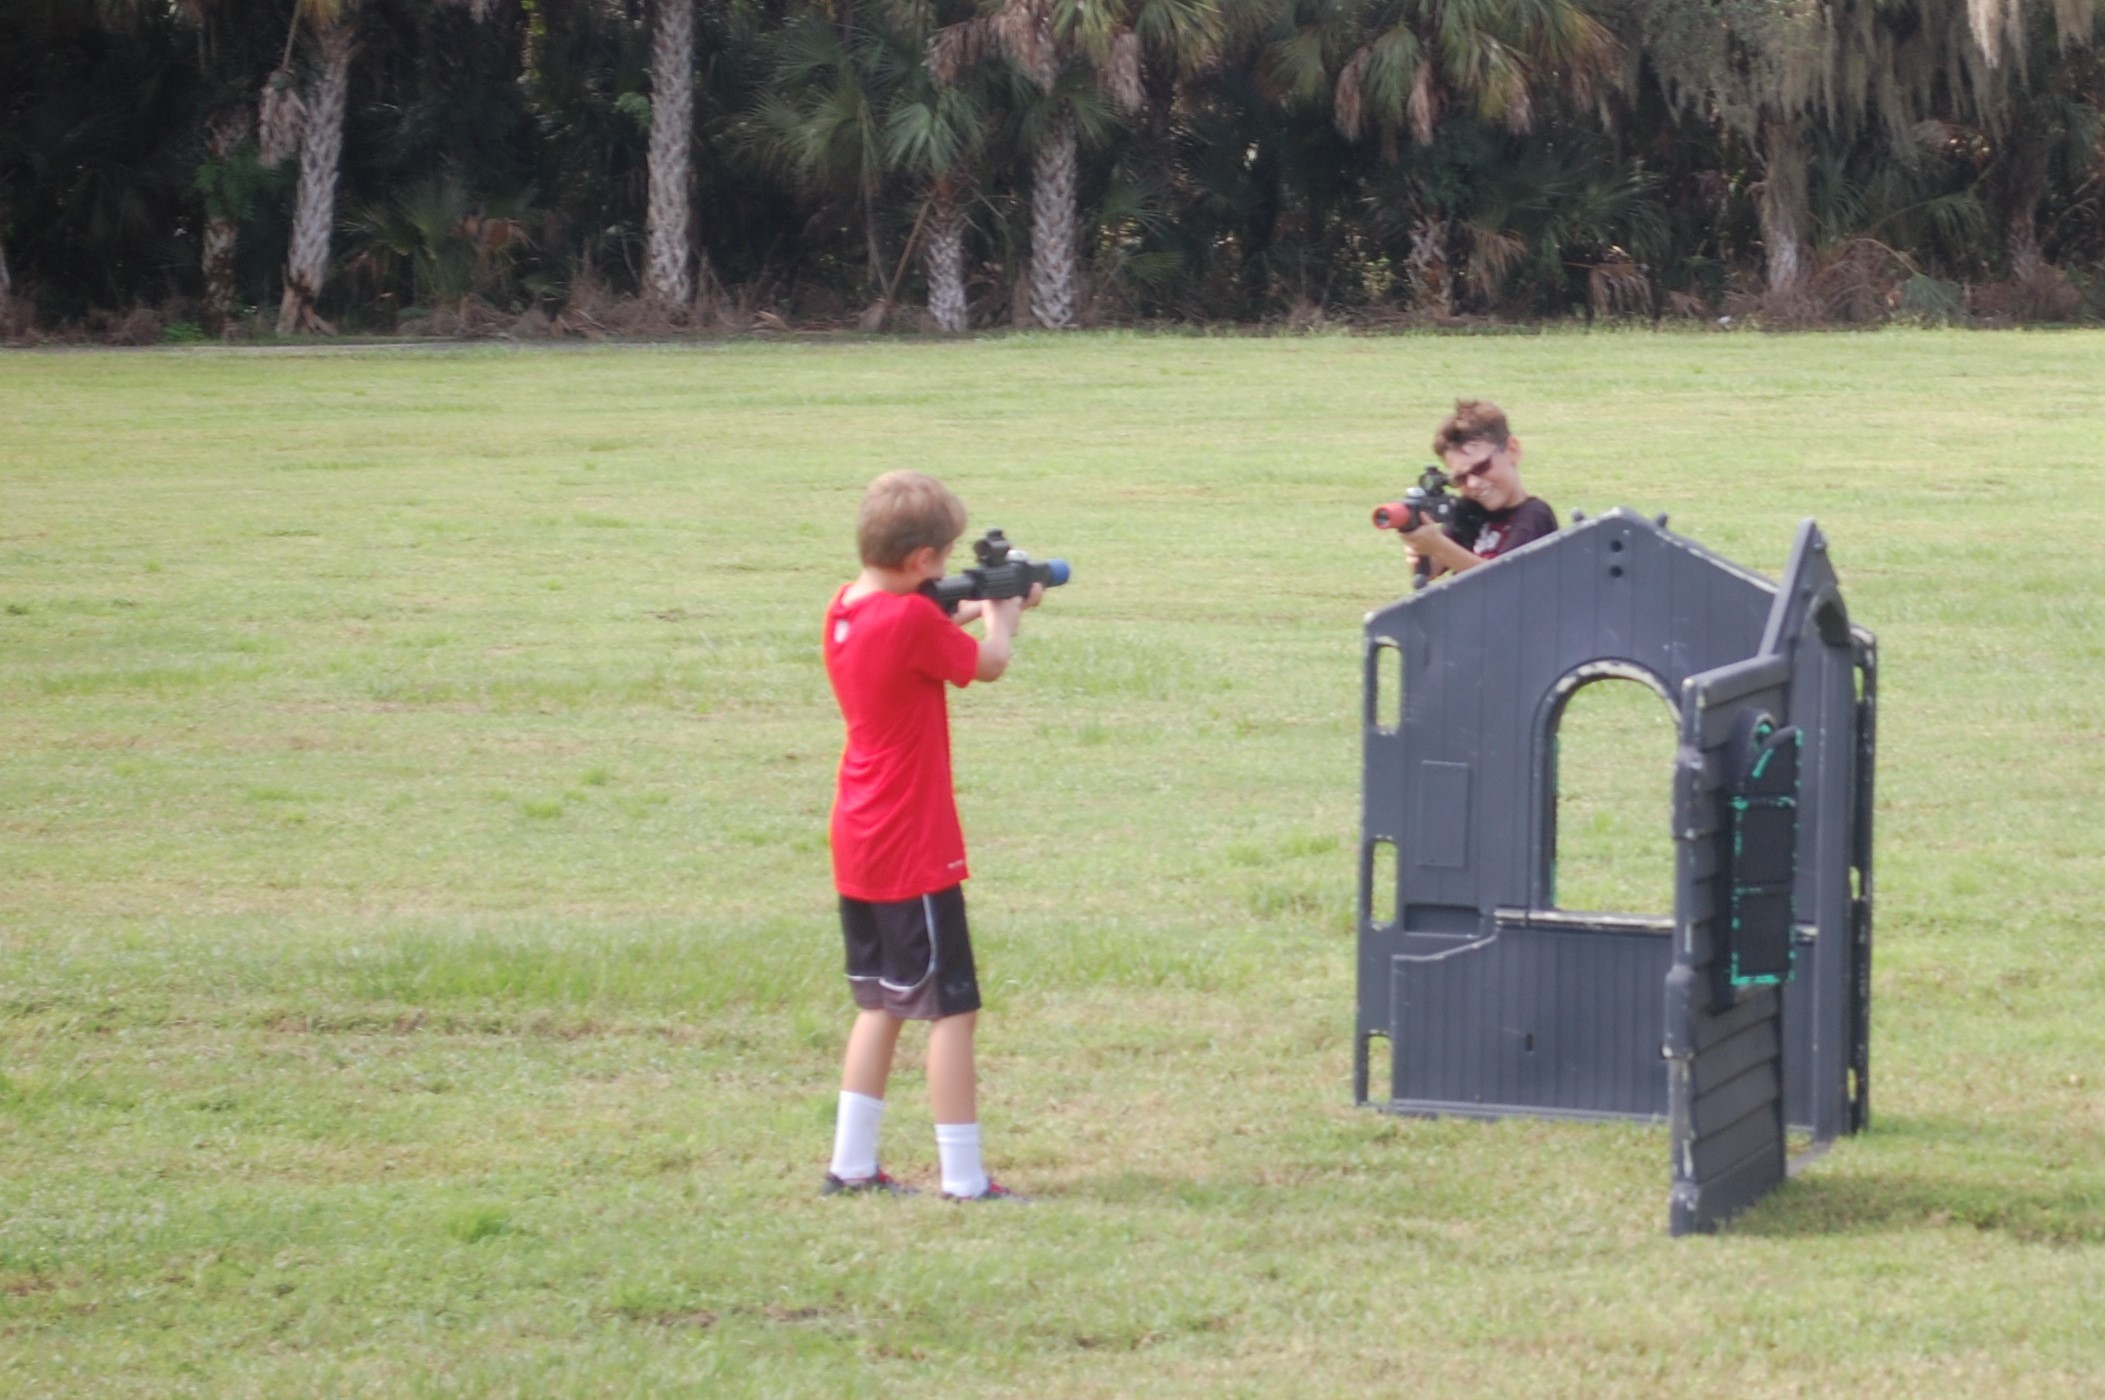 Laser Tag in Port Charlotte,FL